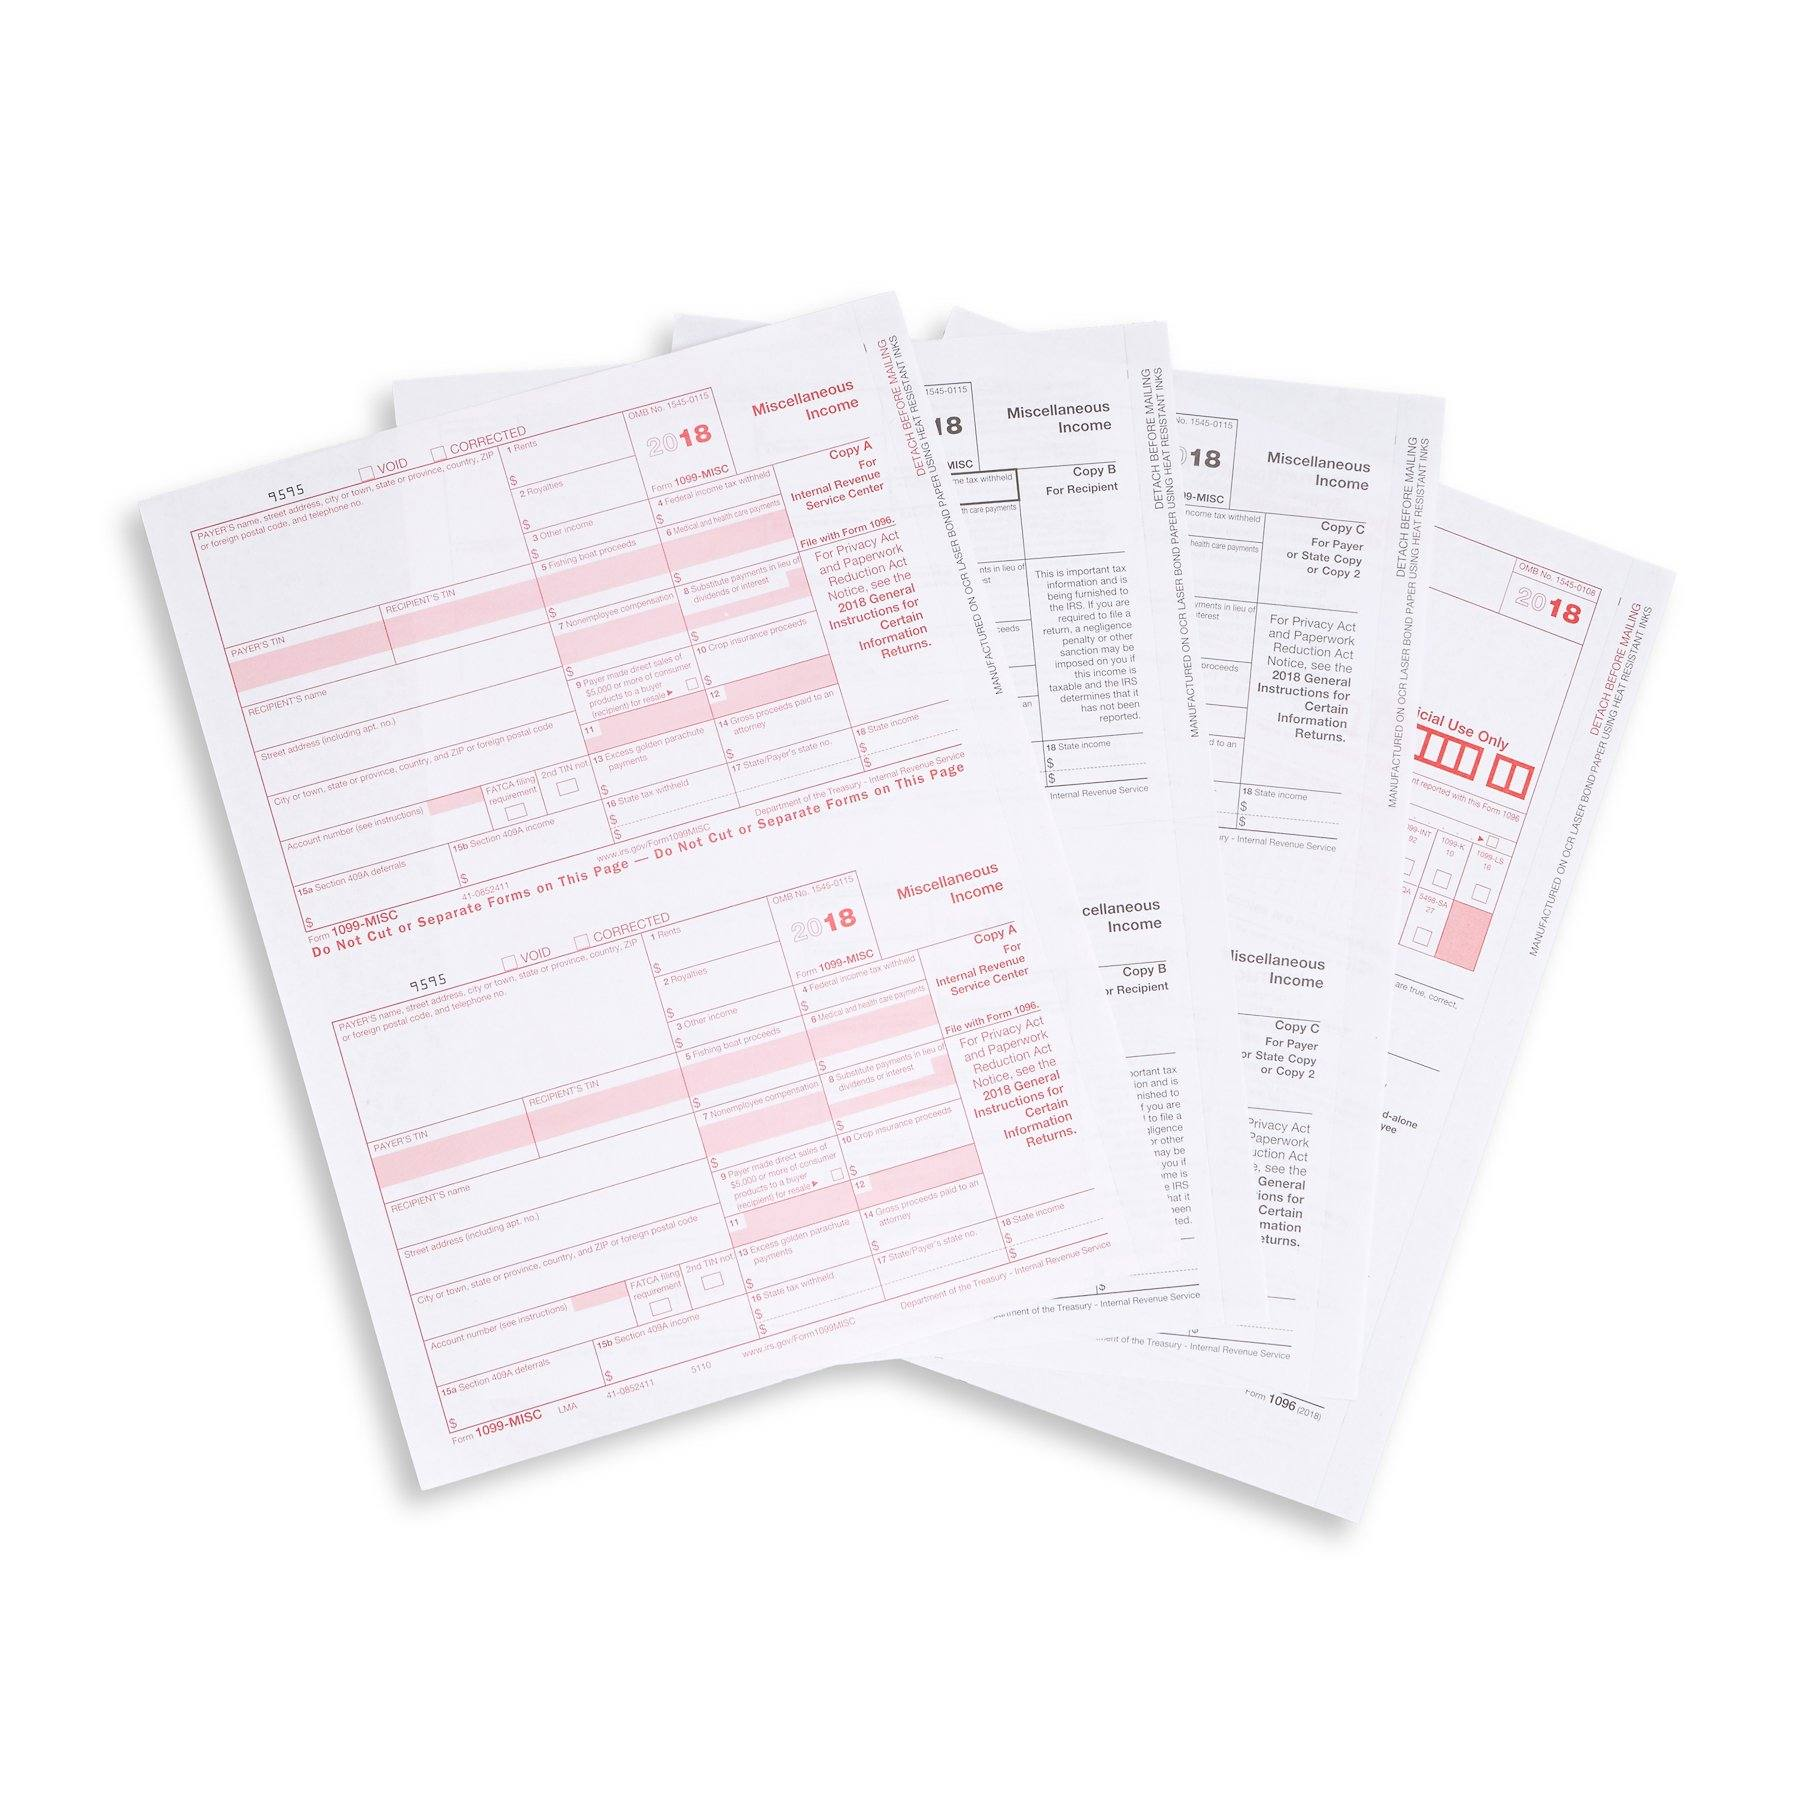 1099 MISC 5 Part 2018 Tax Forms Kit, 25 Count